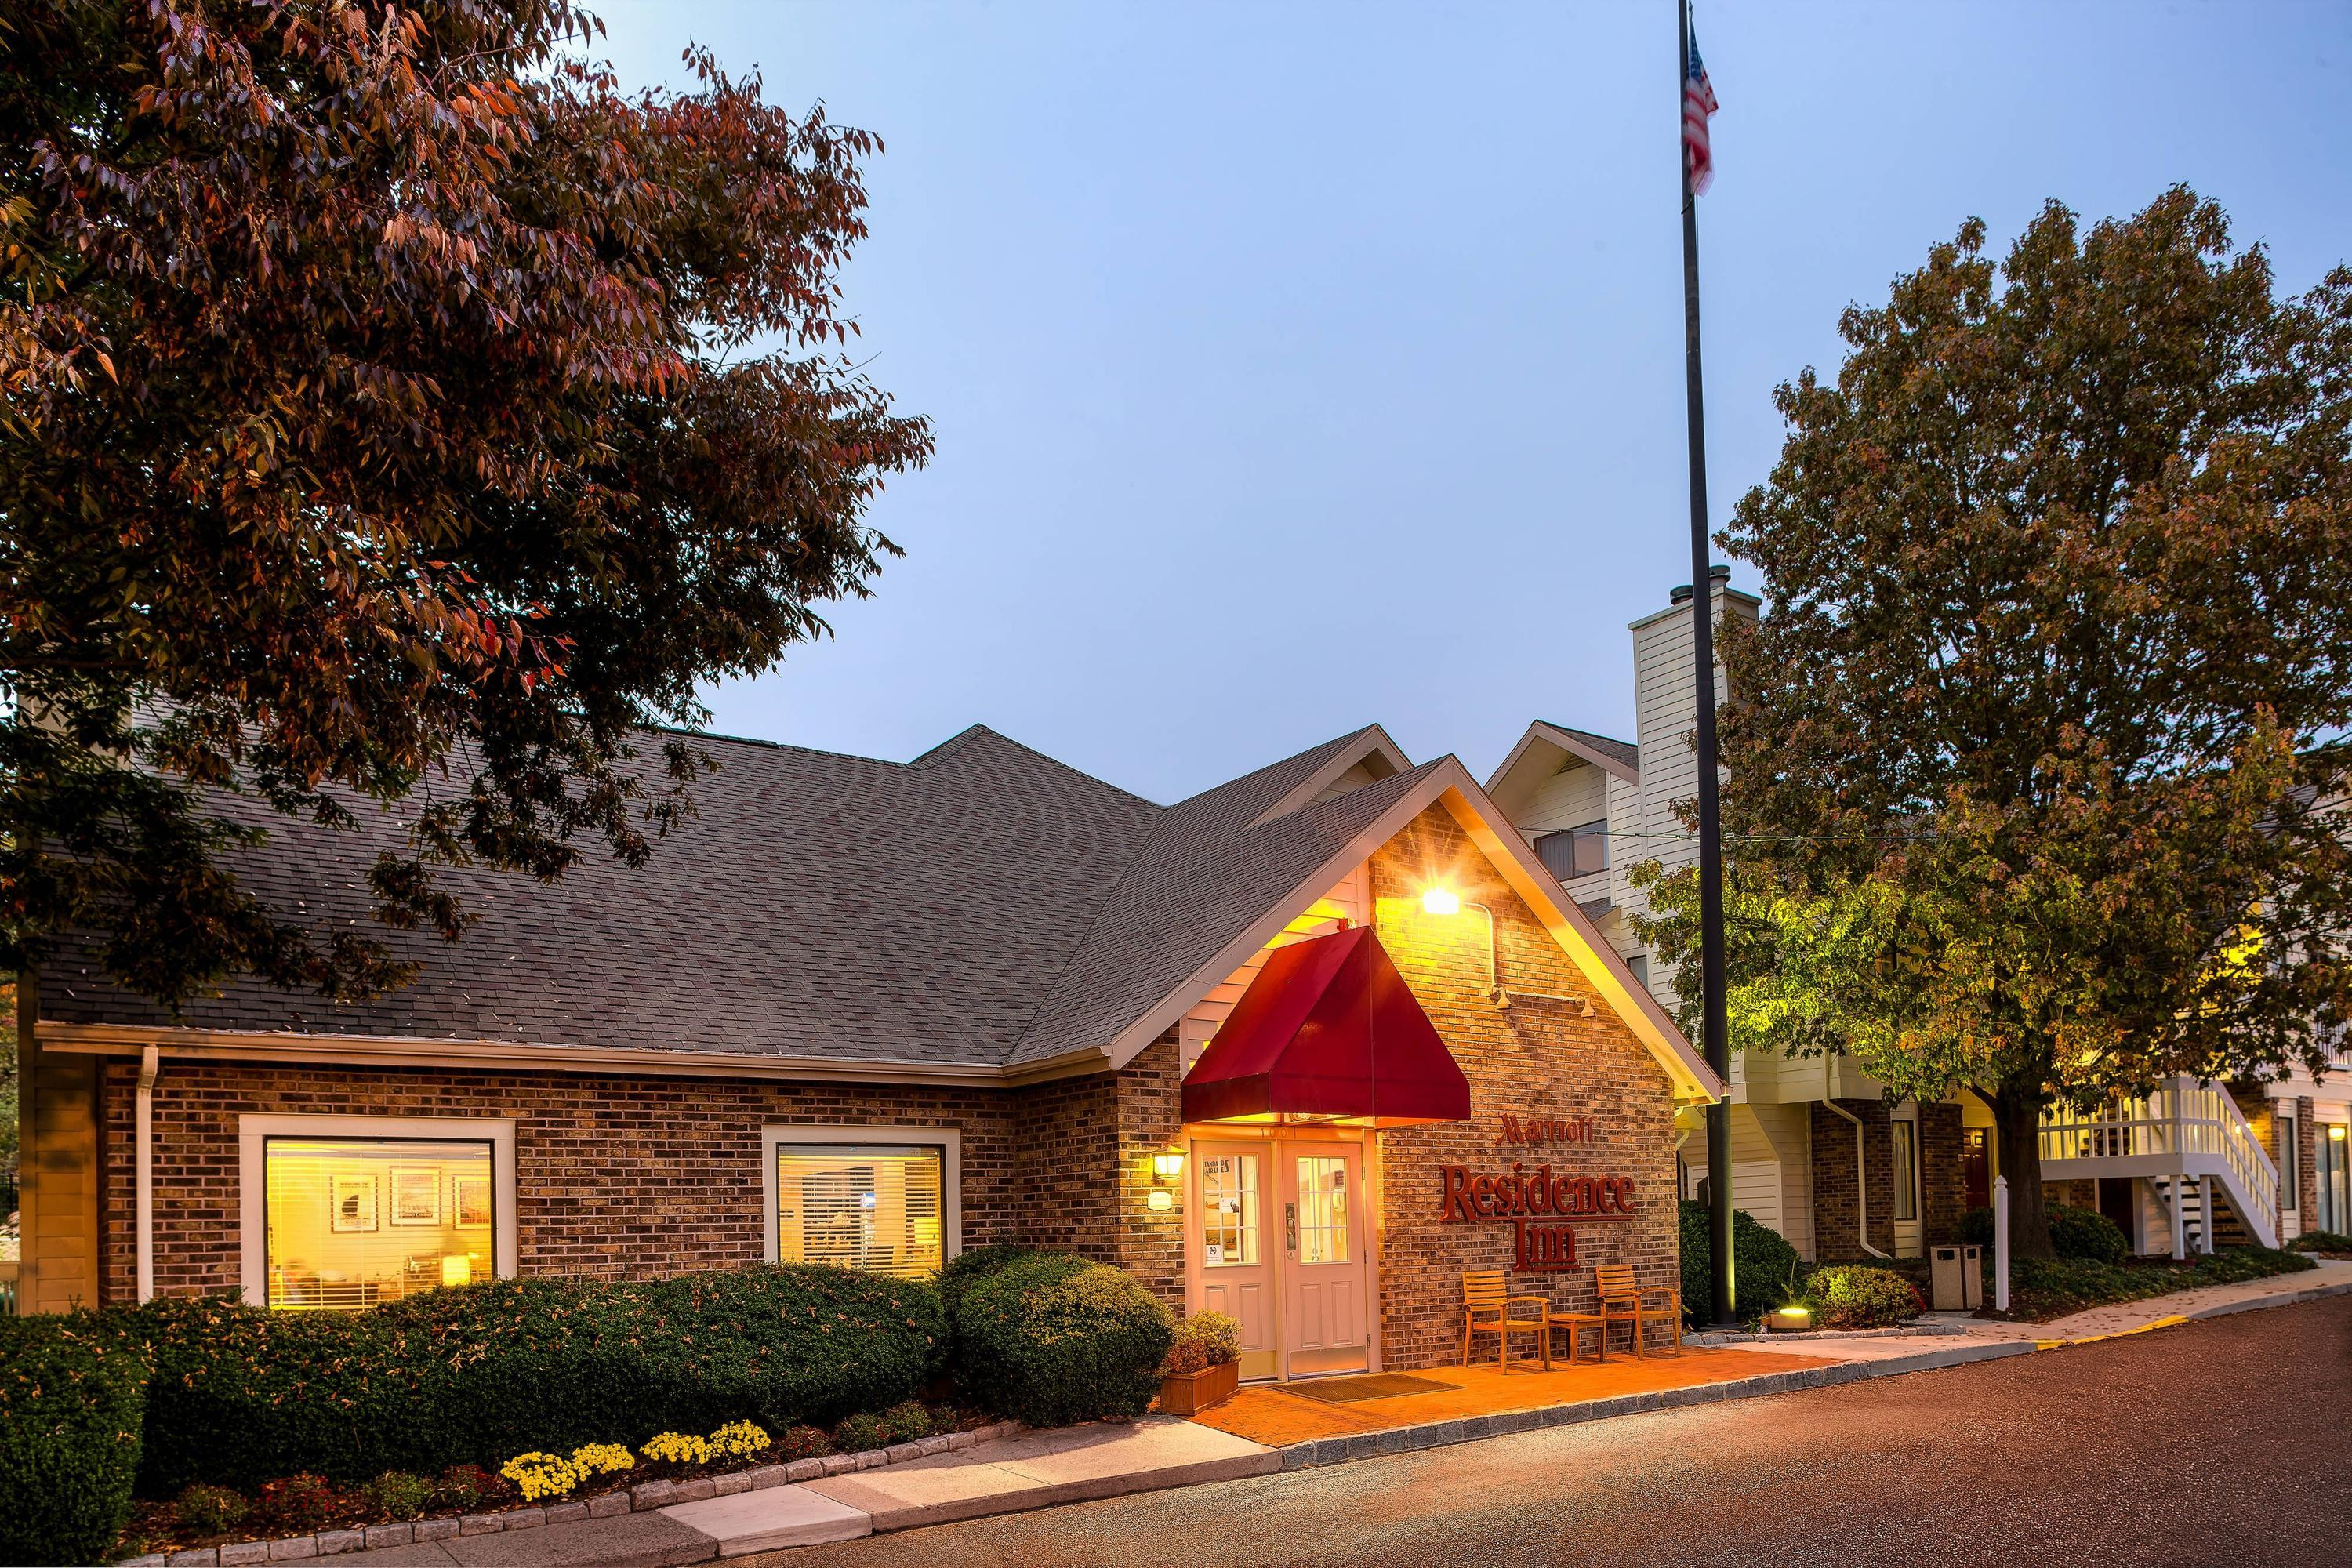 Residence Inn by Marriott Shelton Fairfield County